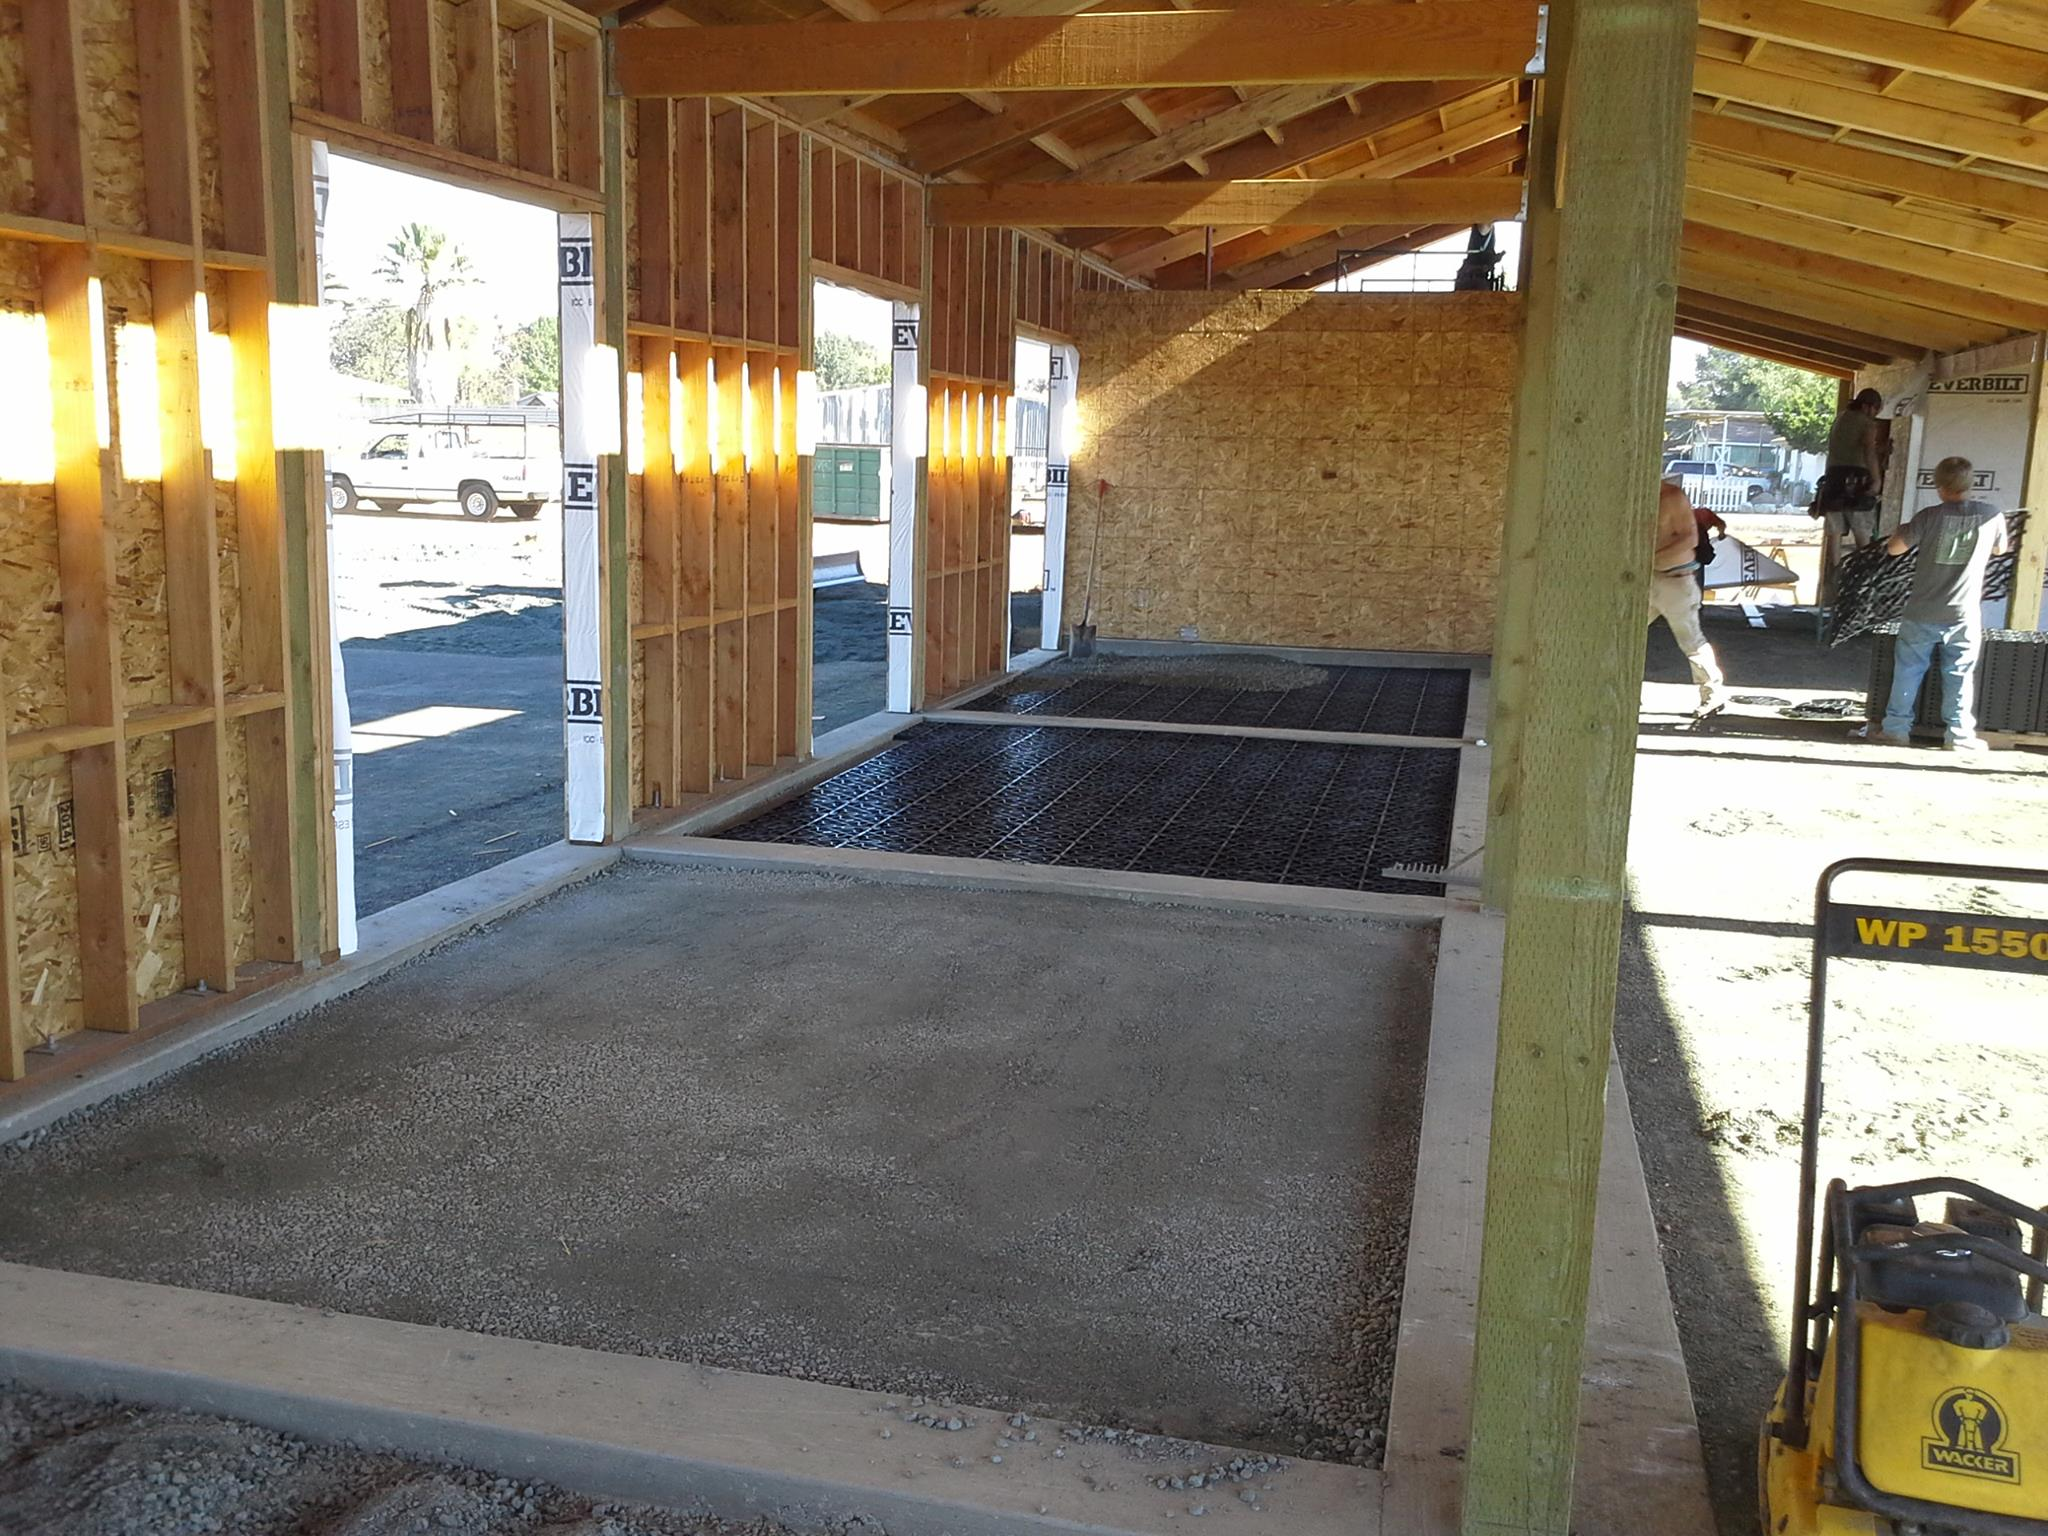 DC buildings international, builds custom Equestrian facilities , they will be installing Ecogreengrid in all of the stalls, and outside paddocks.